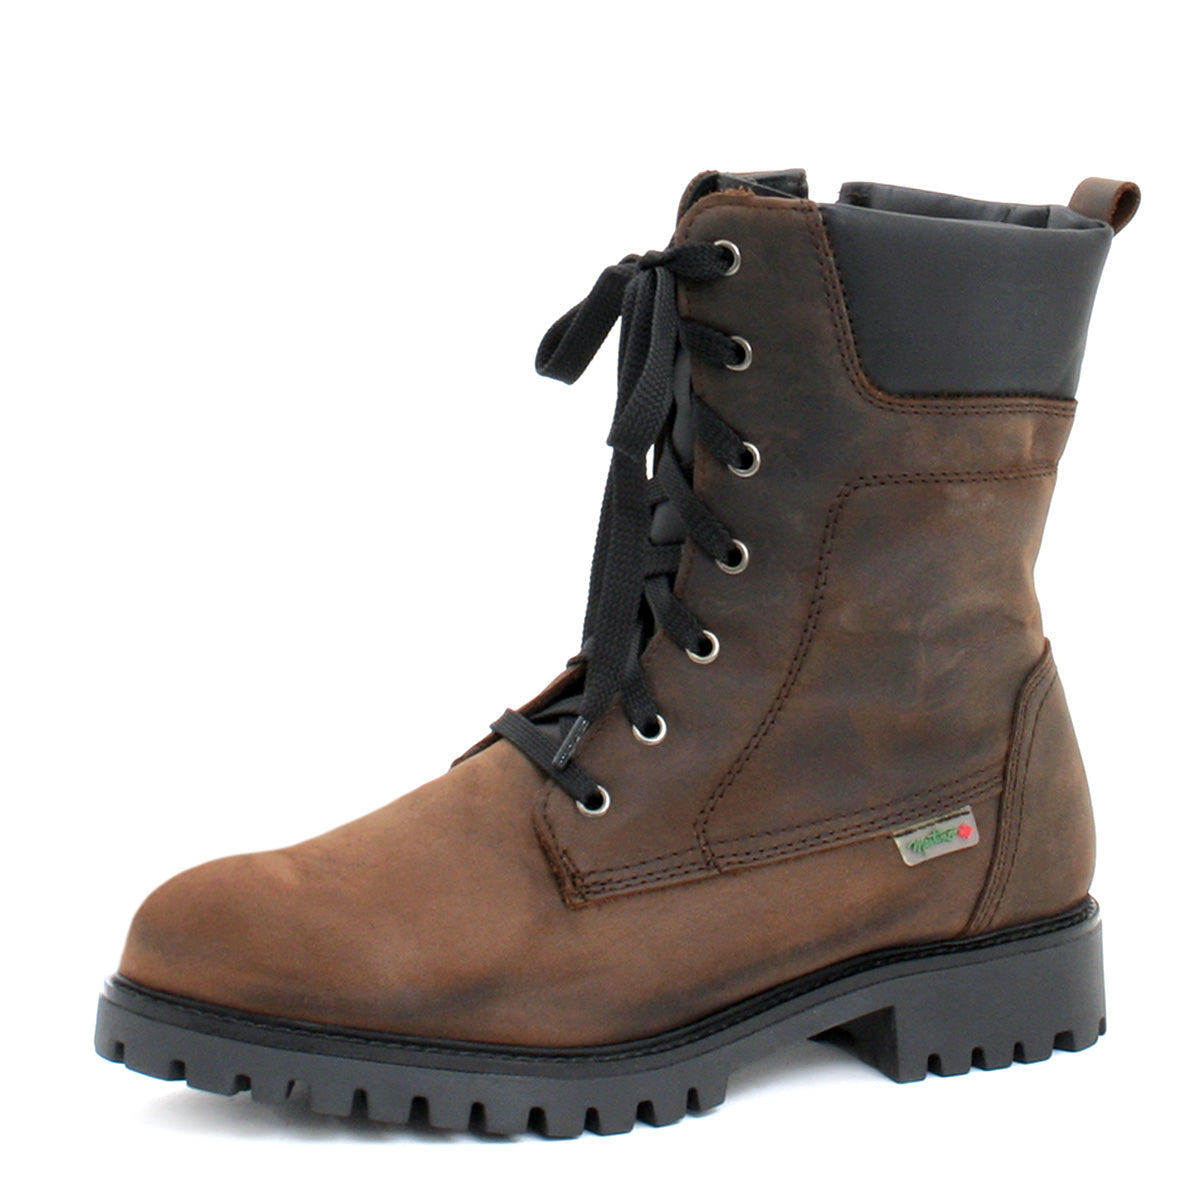 running shoes brand new buy cheap Men Boots | Bottes Hommes - Amimoc